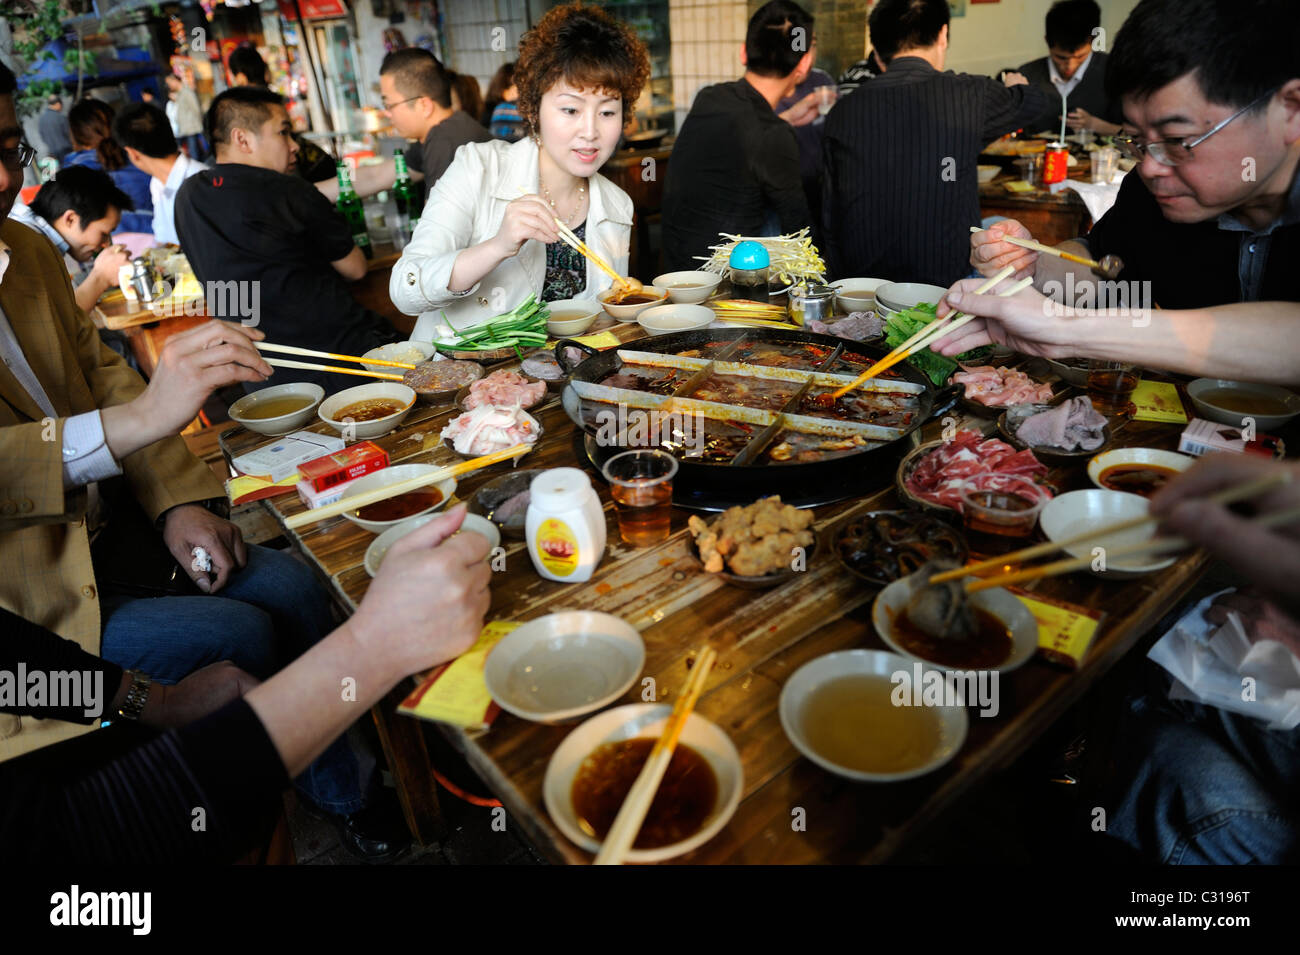 Residents have Hotpot in Chongqing, China. 22-Apr-2011 - Stock Image